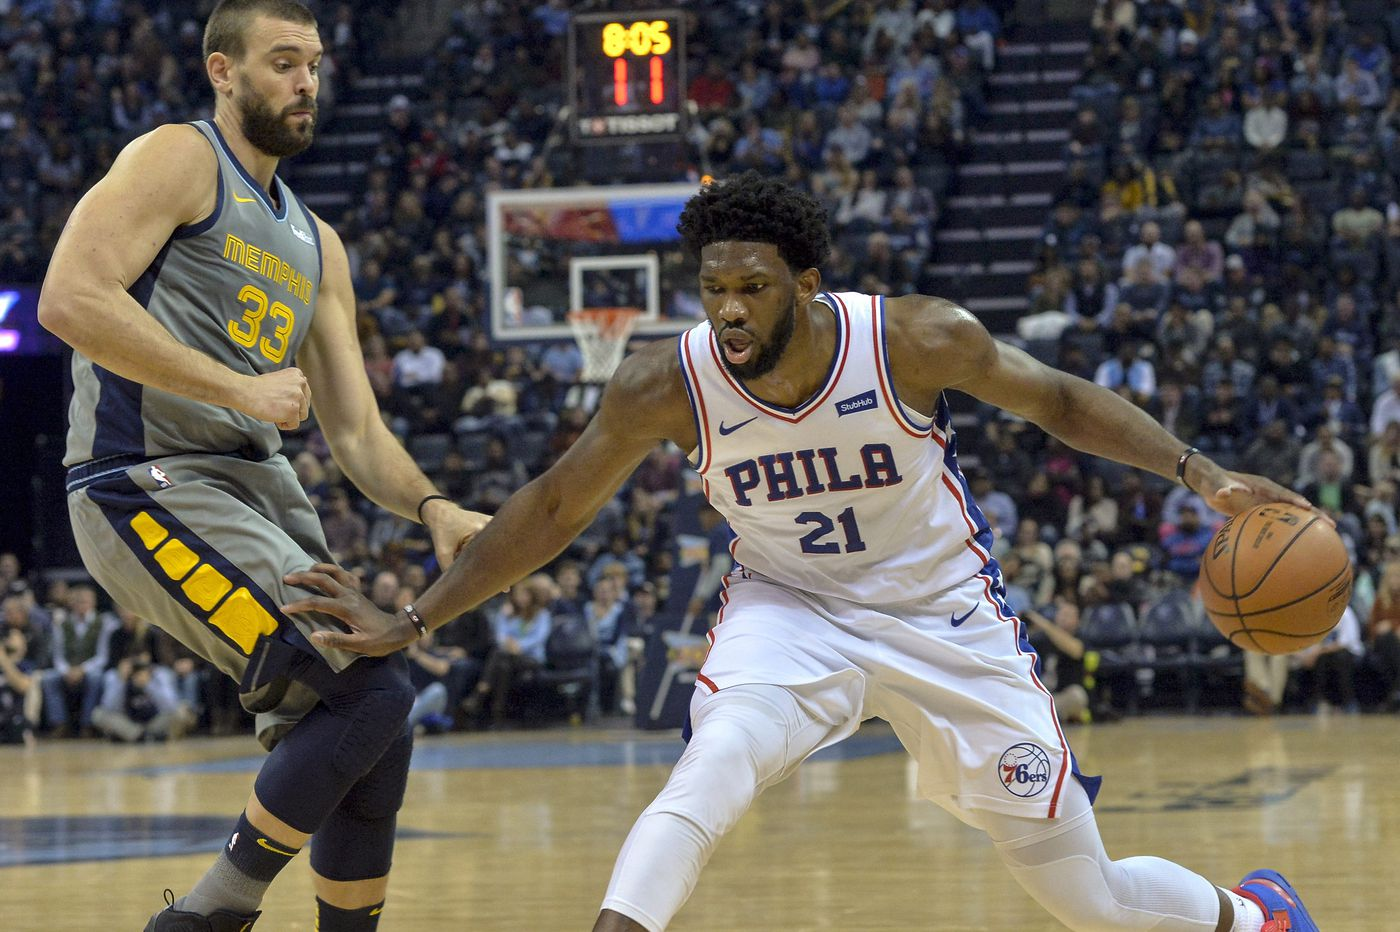 Shorthanded Sixers fall to Grizzlies in overtime in game overshadowed by trade